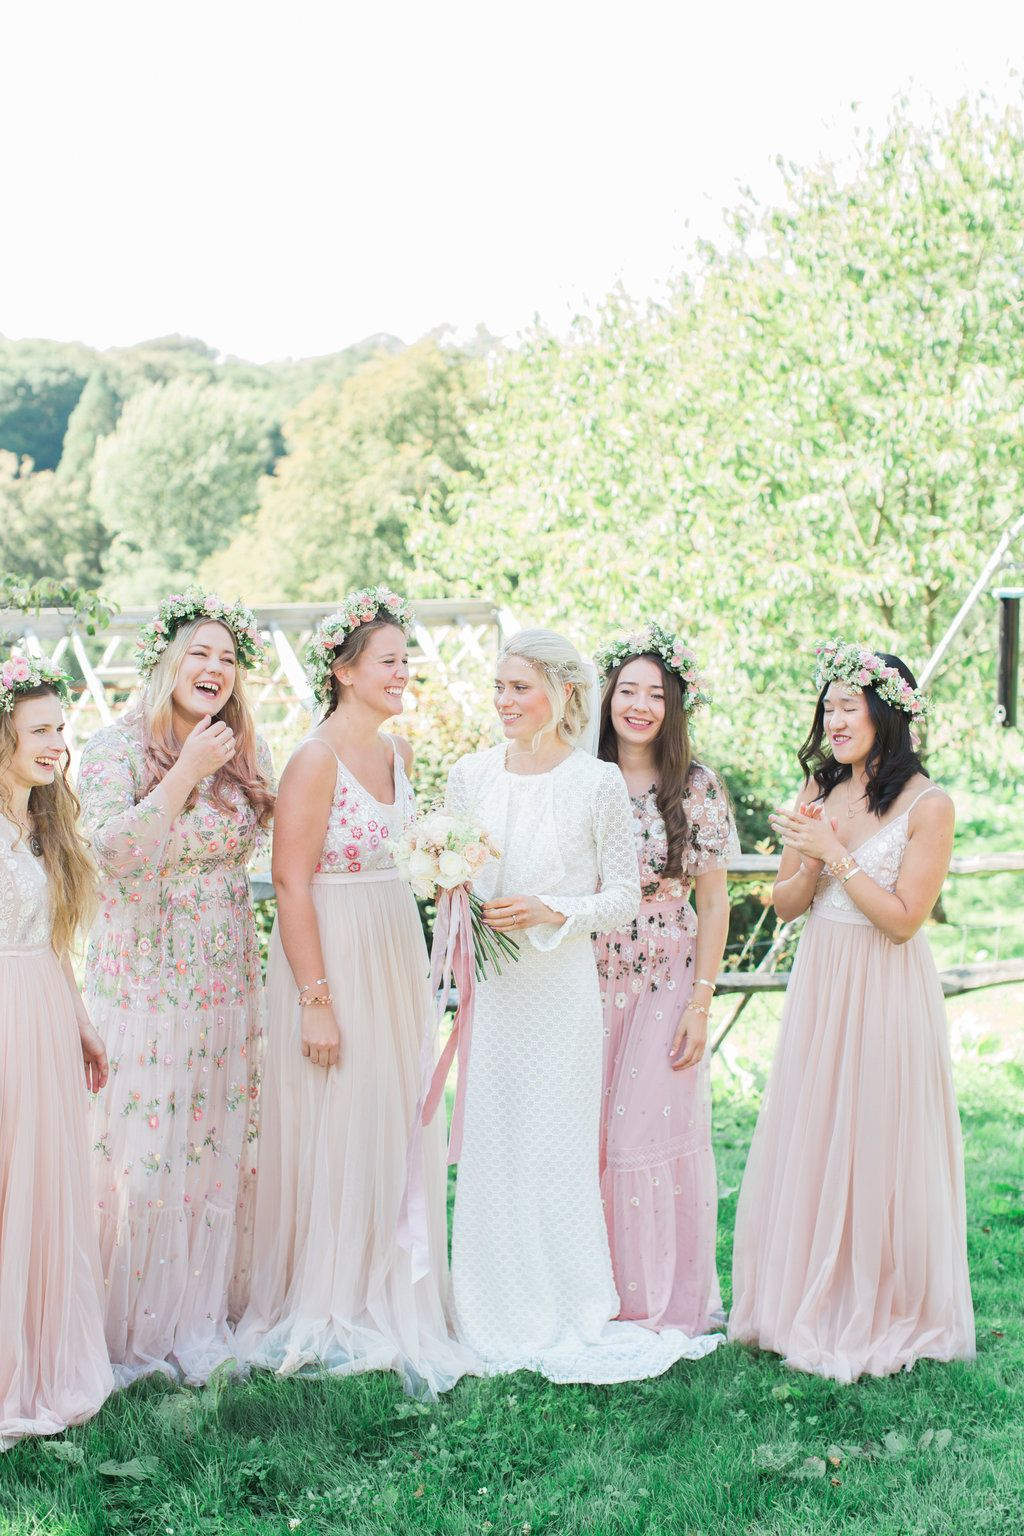 Needle Thread Bridesmaids Dresses For A Pink And Mint At Home Marquee With Fine Art